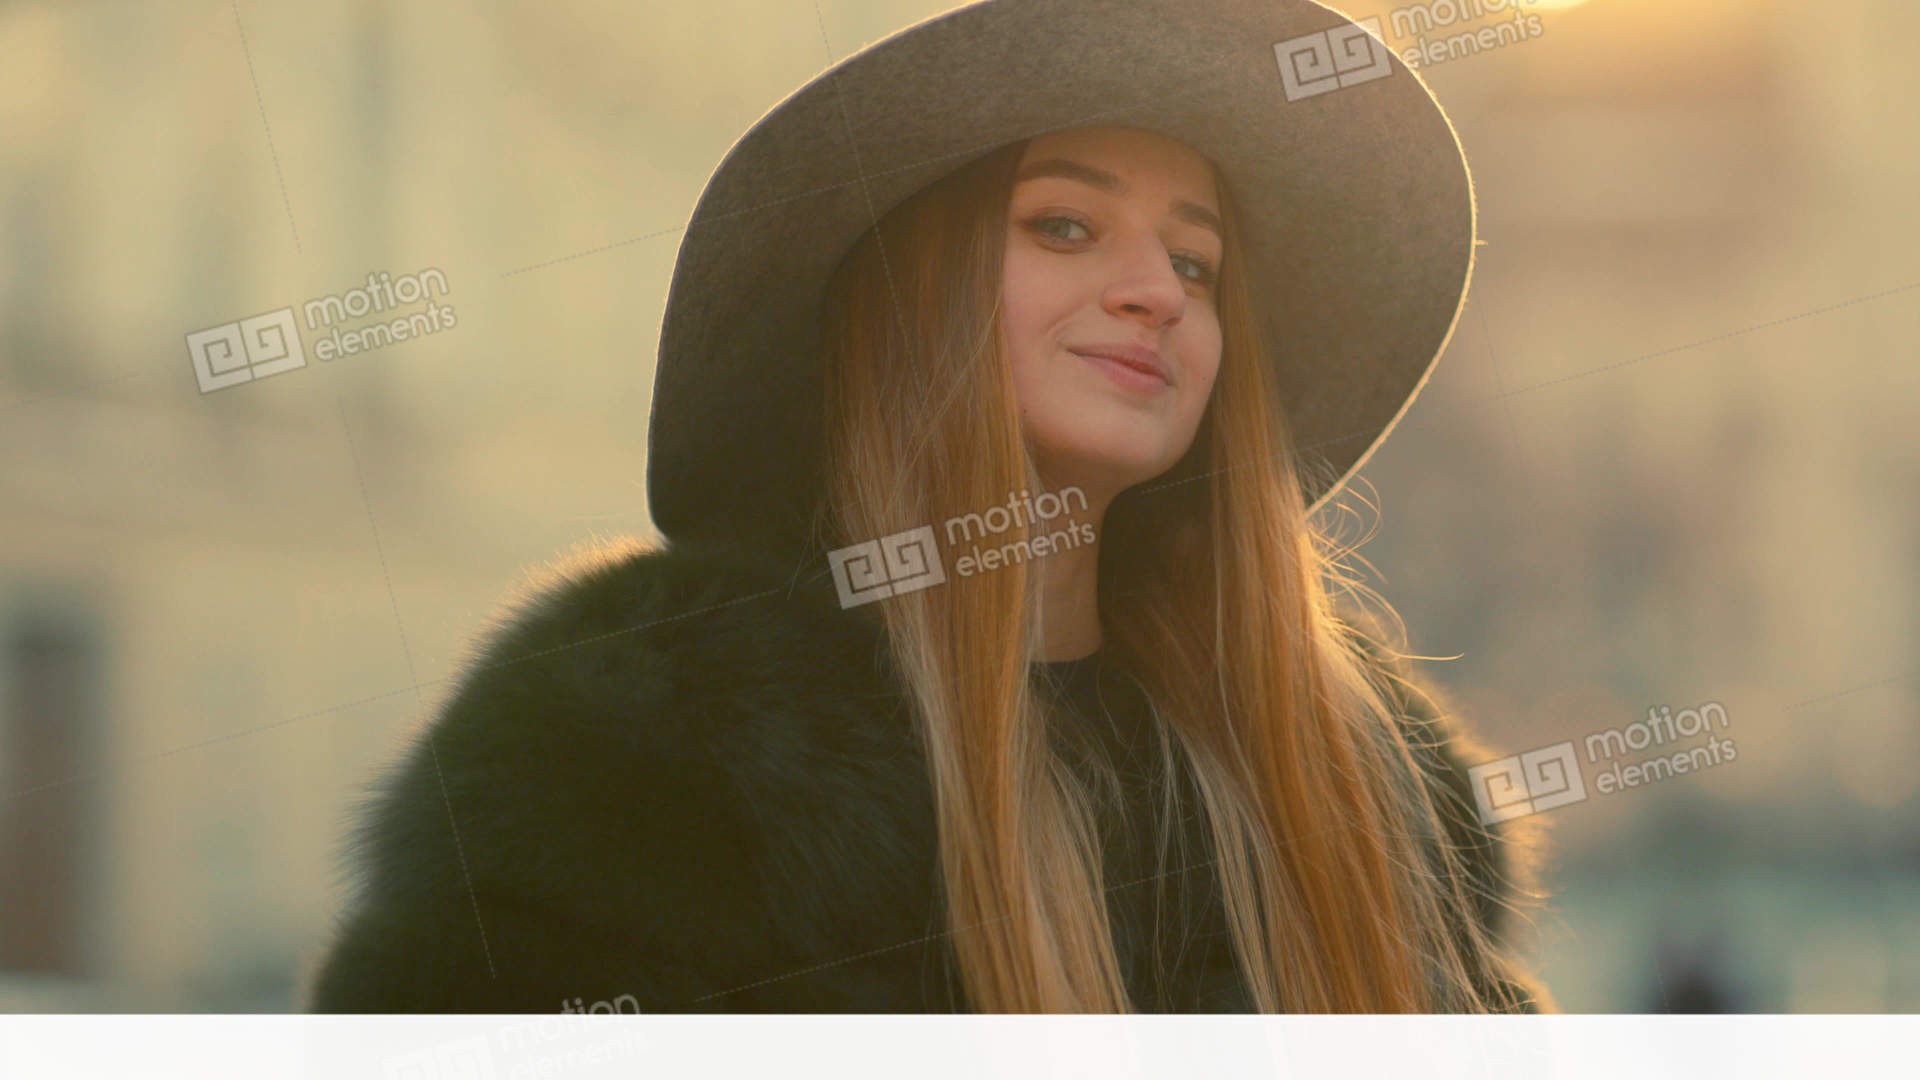 me11503304-young-woman-looks-right-towards-camera-happy-smile-female-ukraine-4k-a0005.jpg